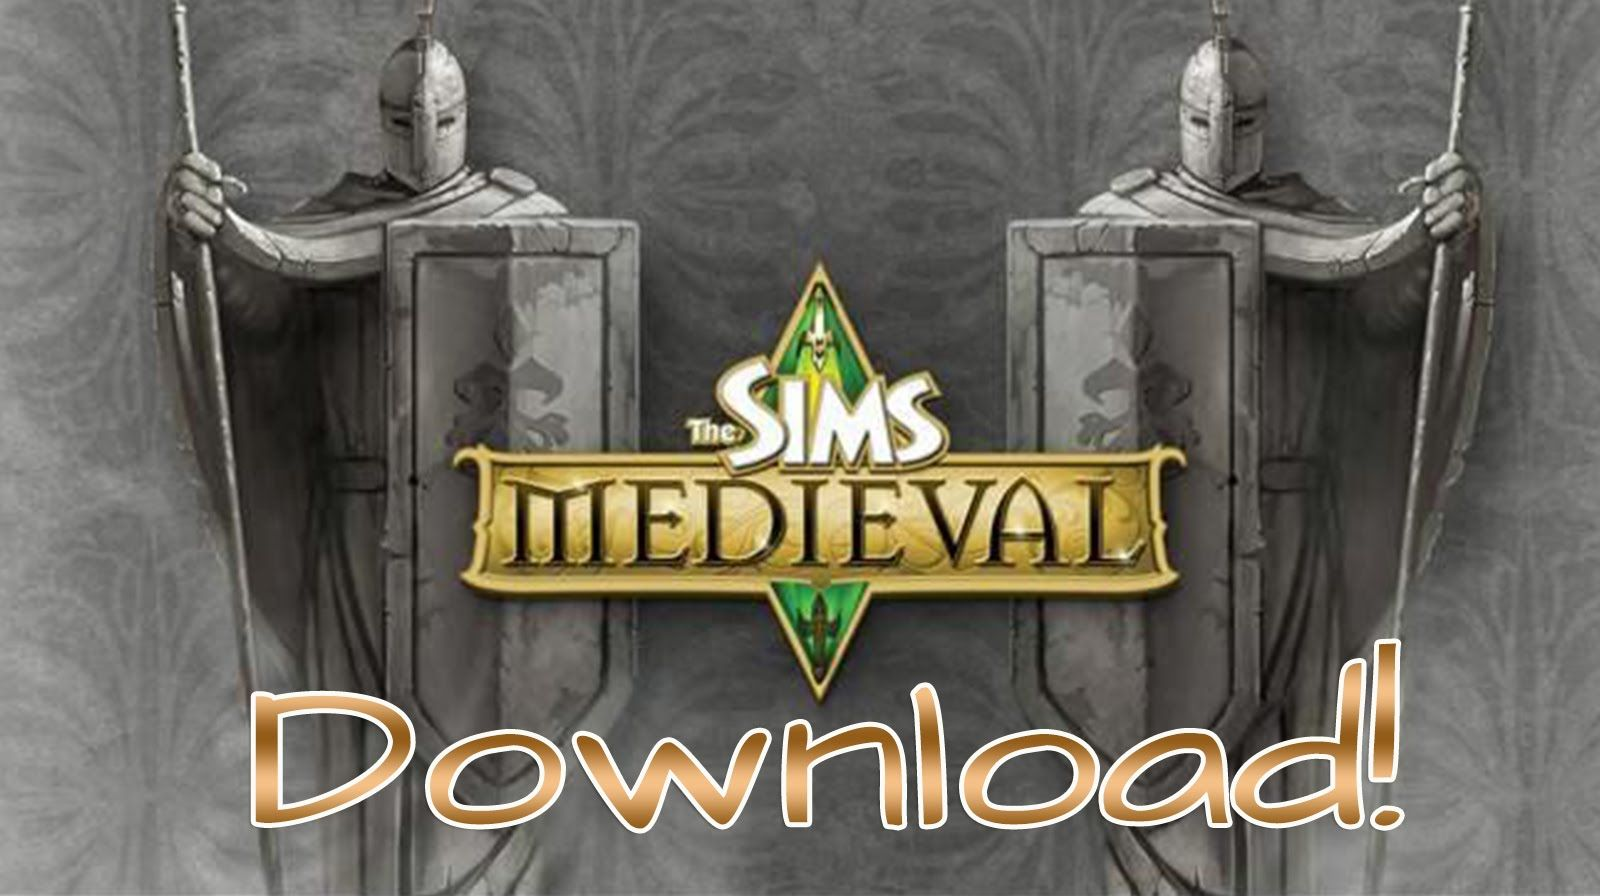 The Sims Medieval (Download) Sims medieval, Middle ages